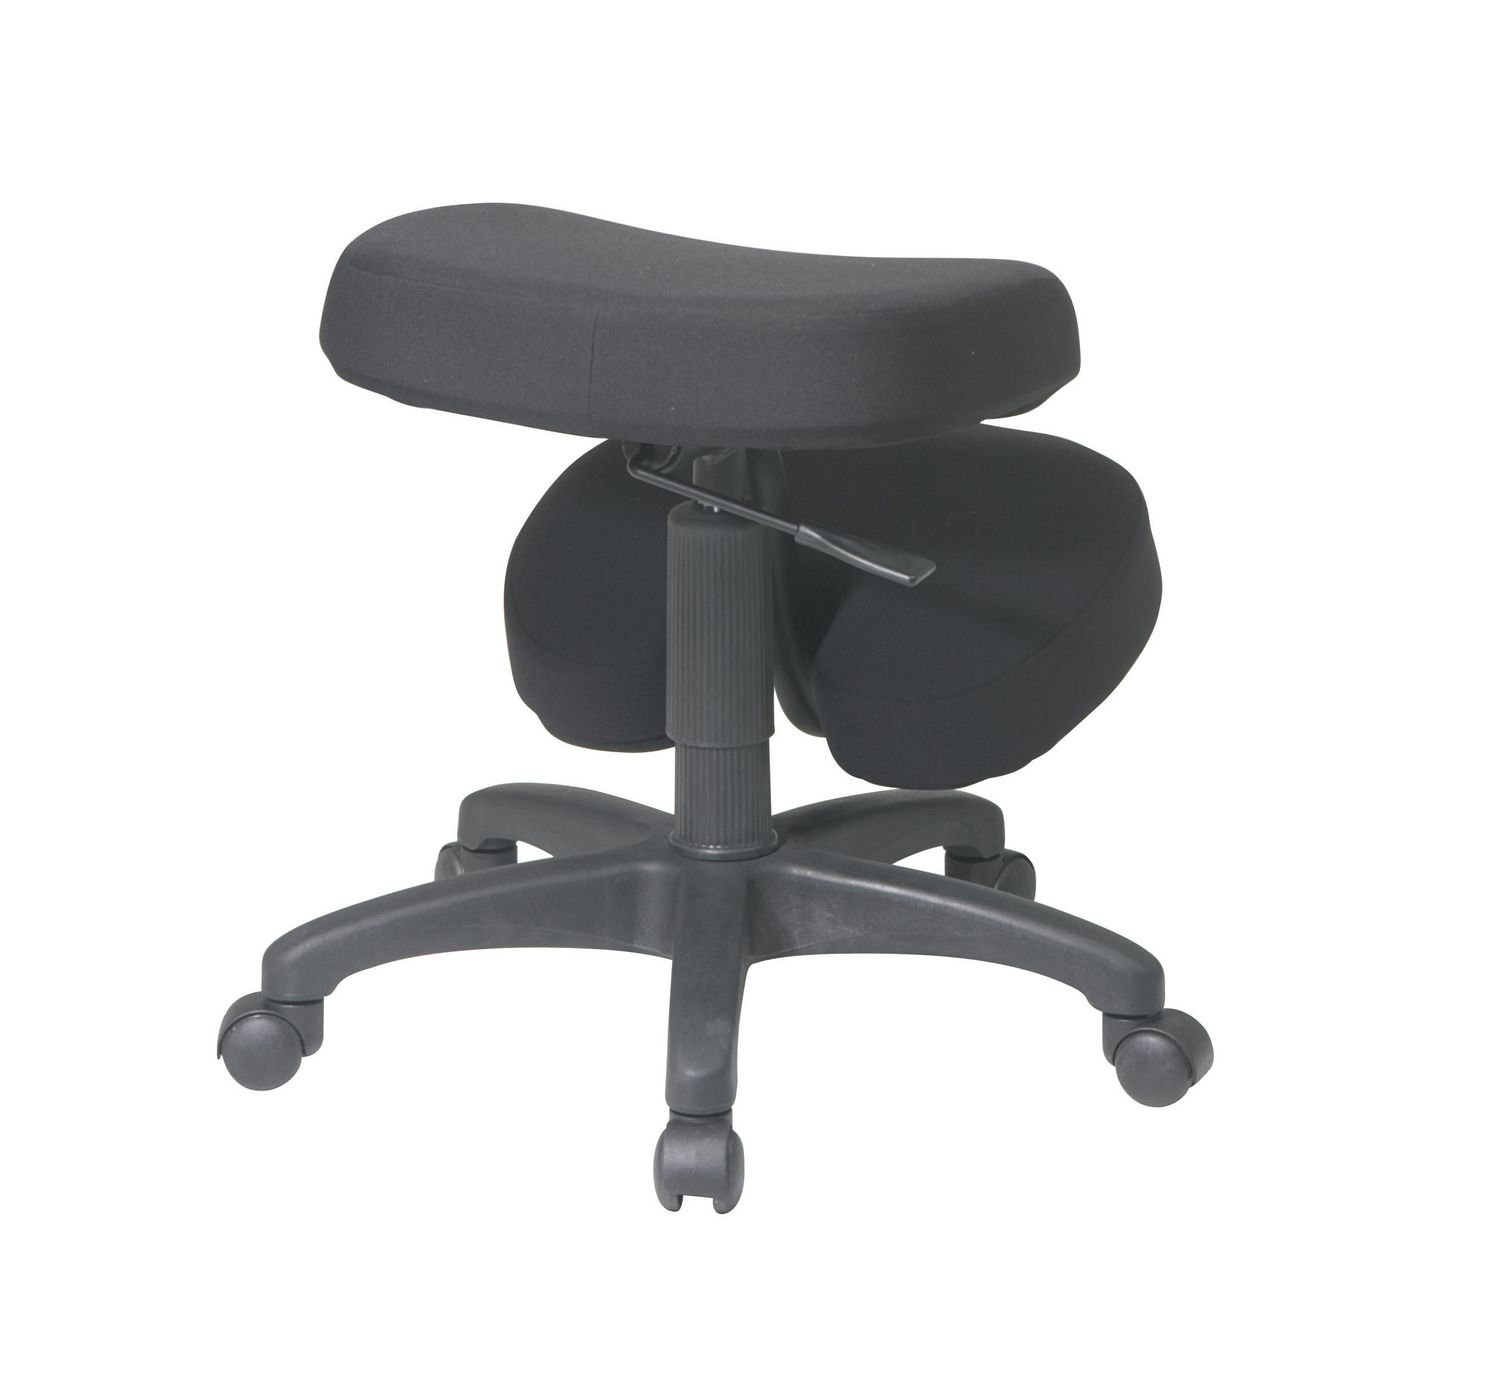 task black ergonomic does and stools knee home pneumatic not gg itm posture kneeling mesh wl landed desk chairs curved fabric pricing mobile back with apply seat tech office chair